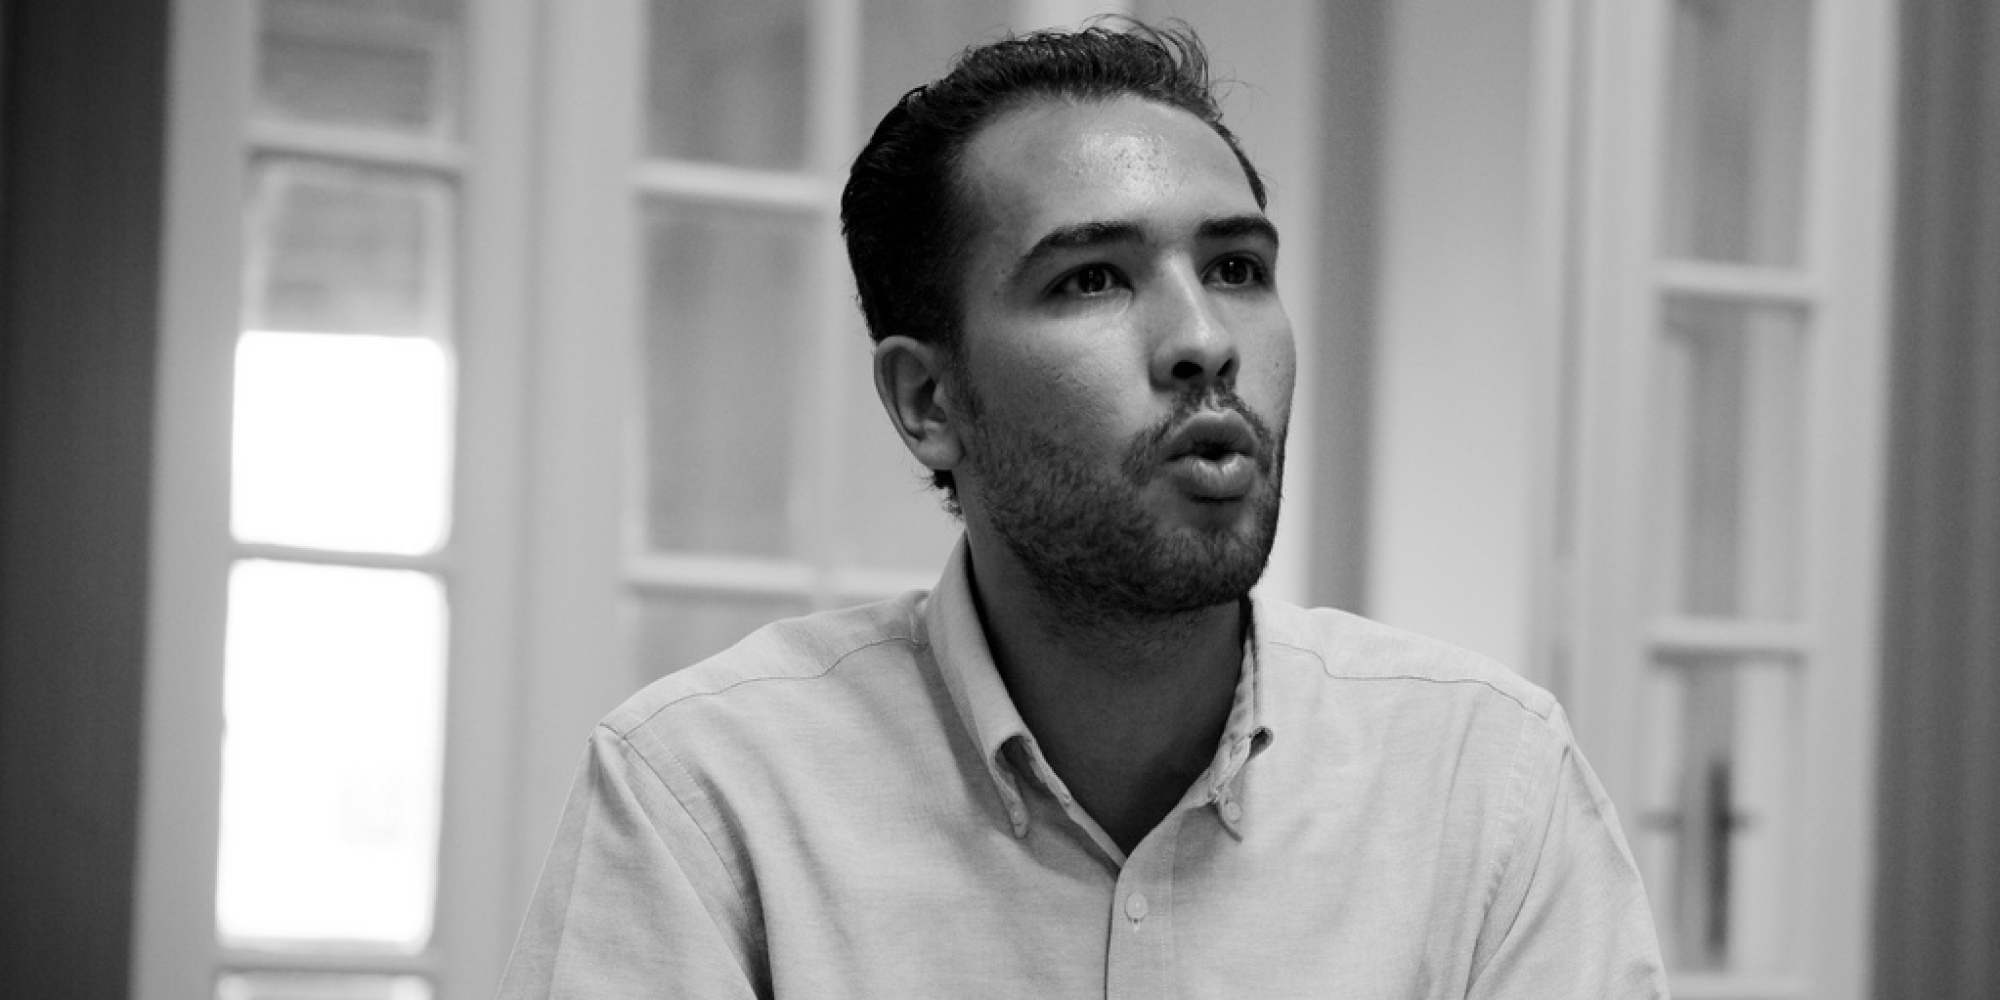 Human Rights Defender and Lawyer Malek Adly